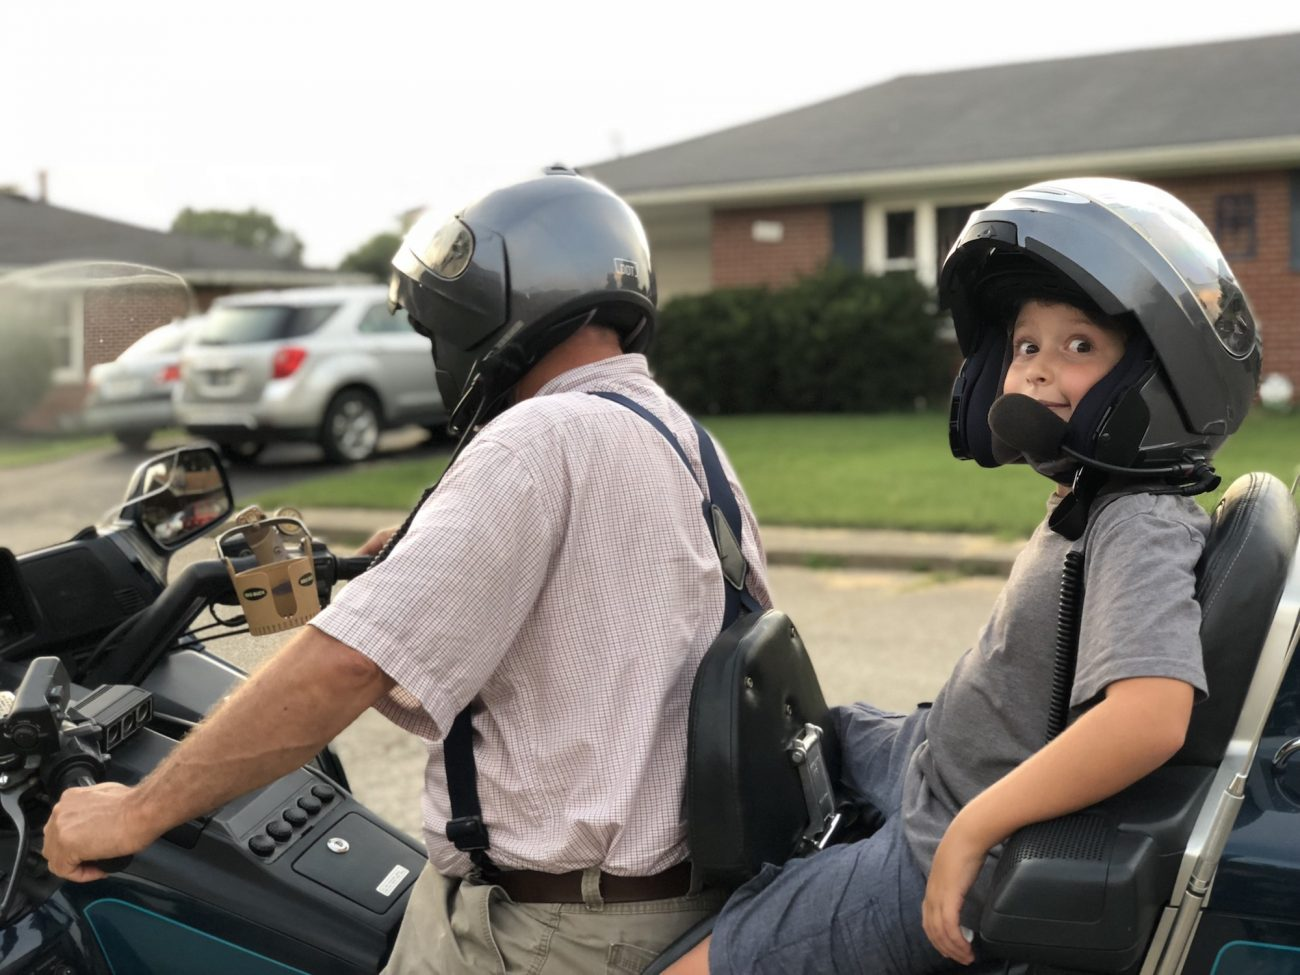 Jax takes a motorcycle ride